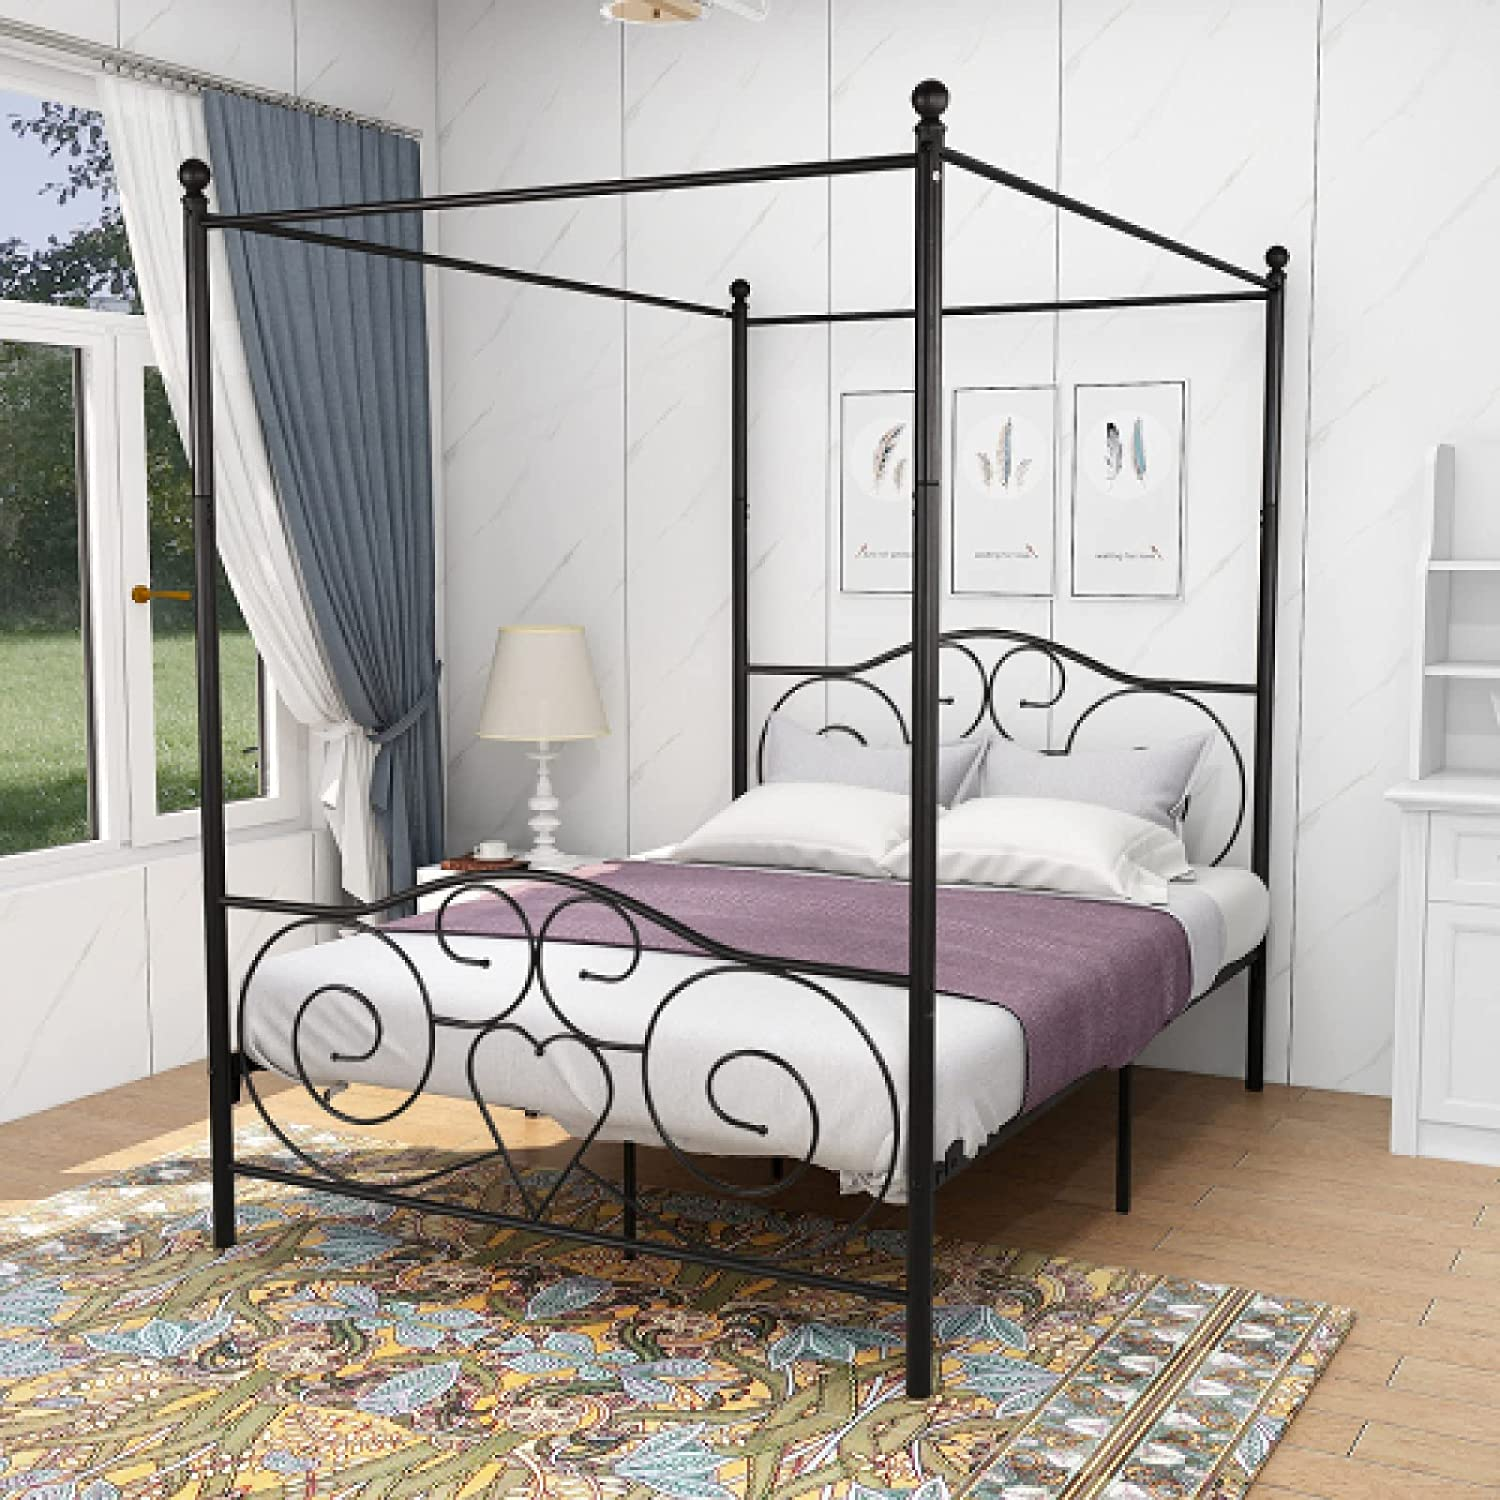 Metal Canopy Max 57% OFF Max 58% OFF Bed Frame with H Footboard Sturdy Headboard Steel